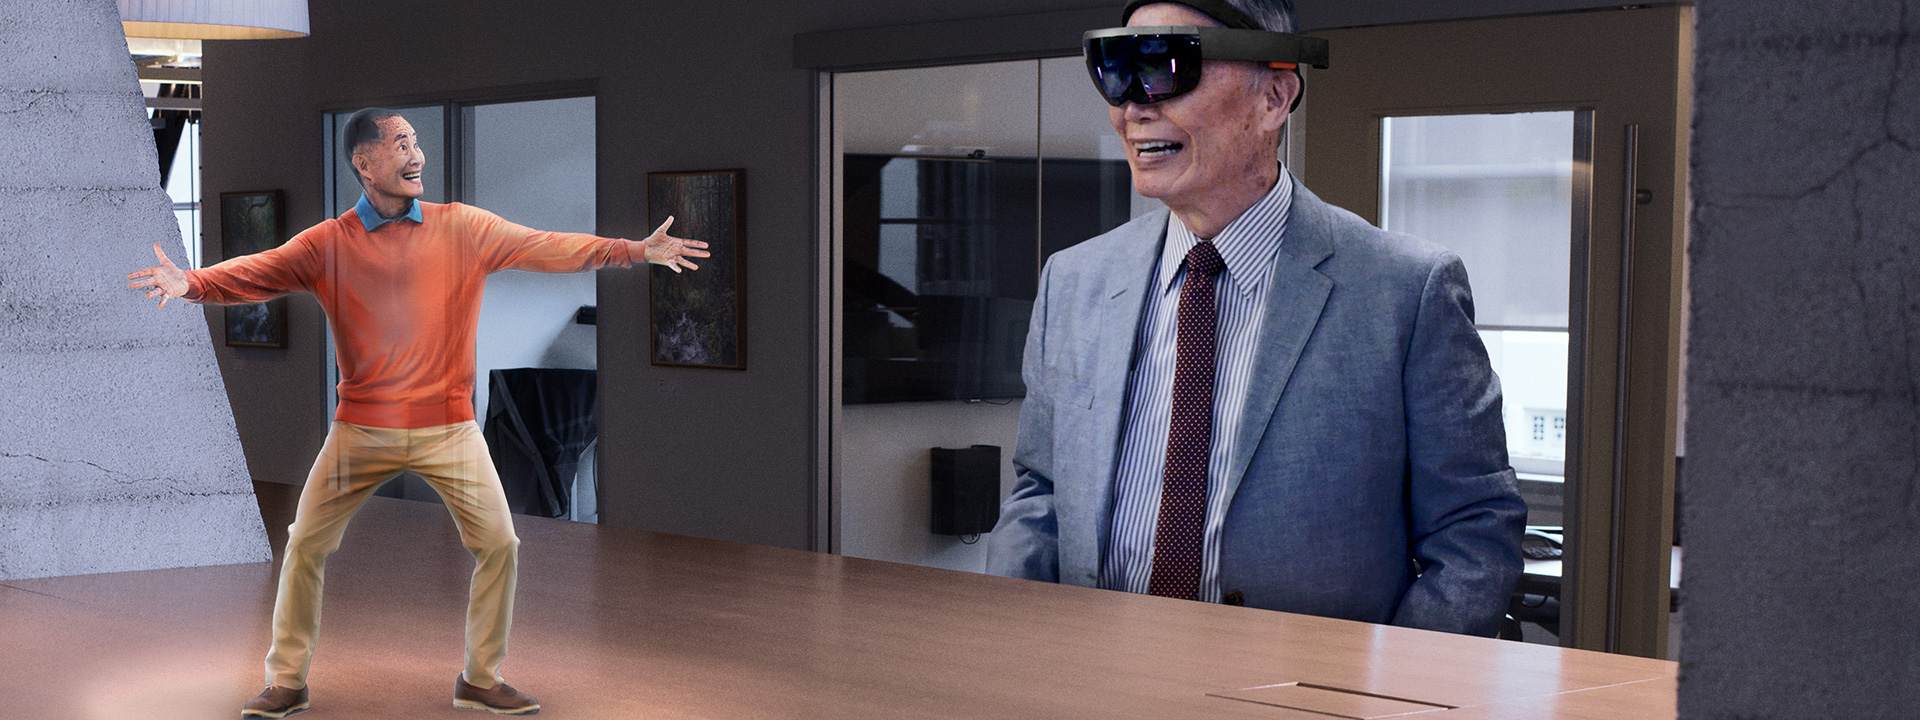 Mixed Reality Apps Bring Holographic Technology To Life